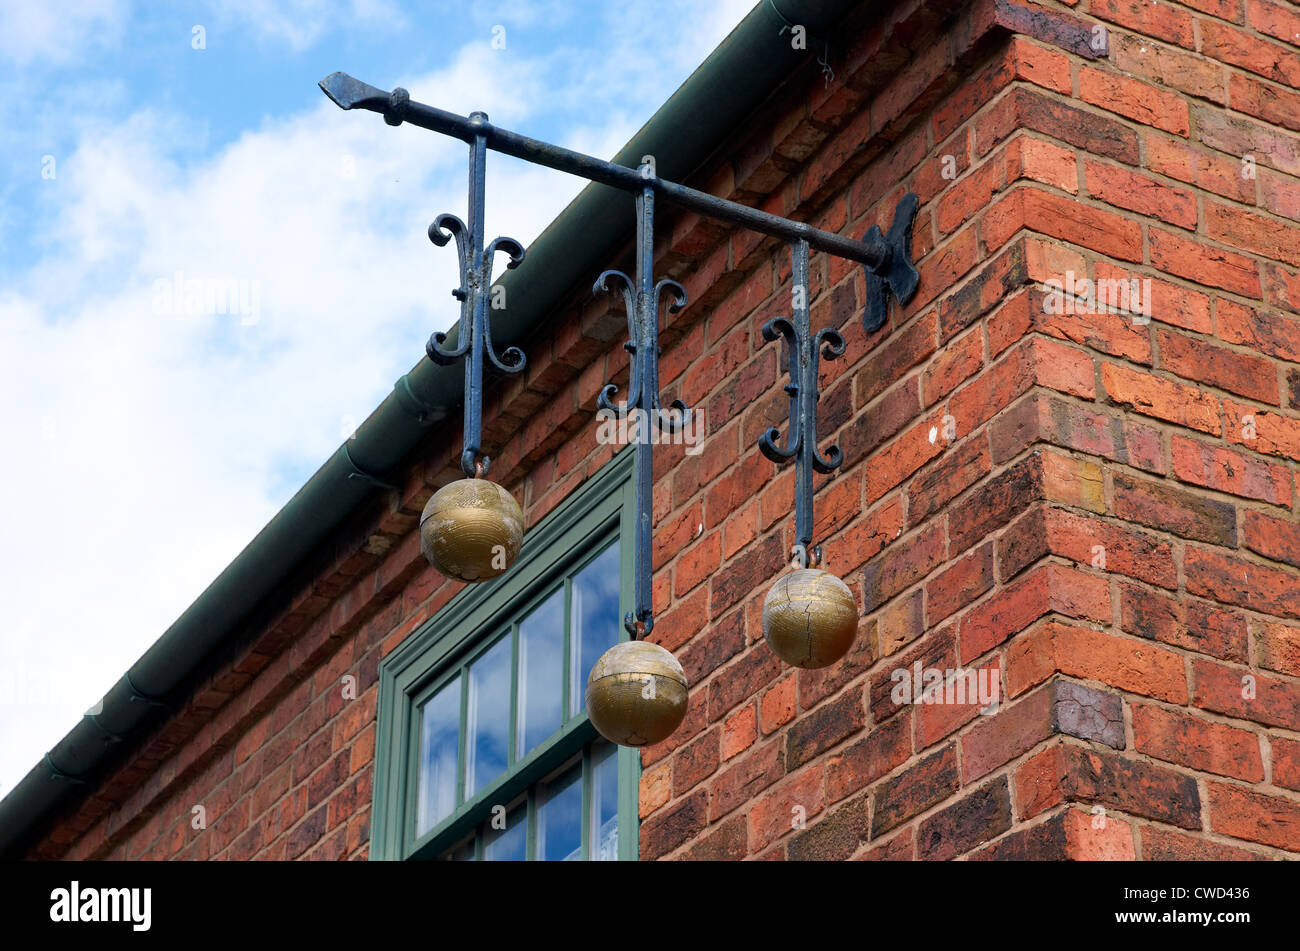 Black Country Living Museum, Dudley, West Midlands - Stock Image